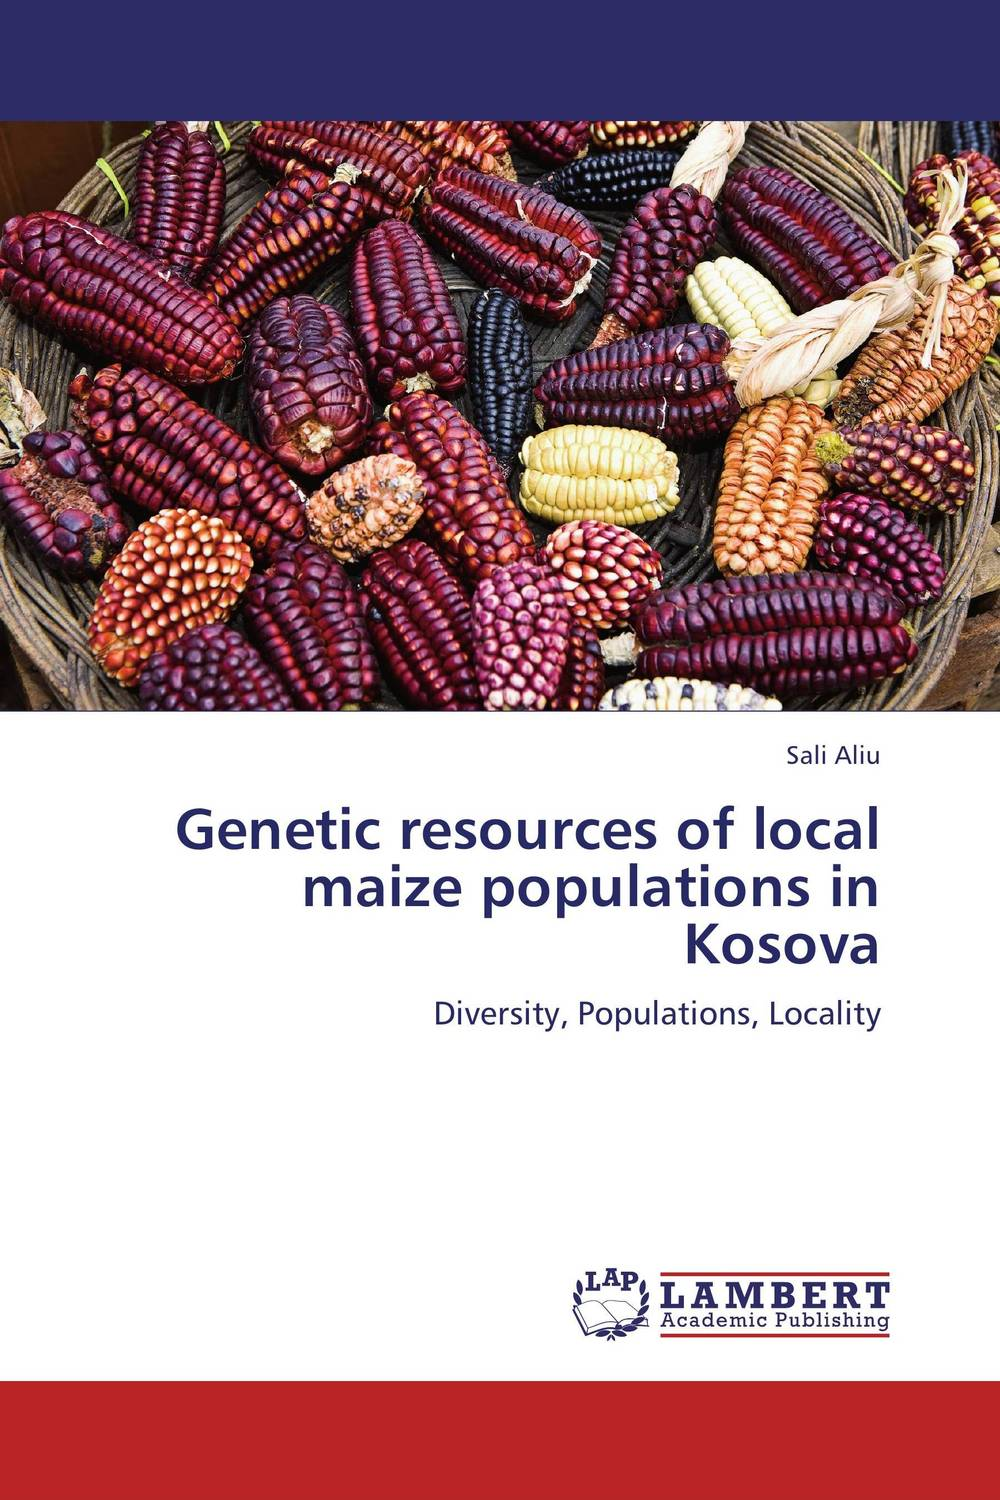 Genetic resources of local maize populations in Kosova plant genetic resources